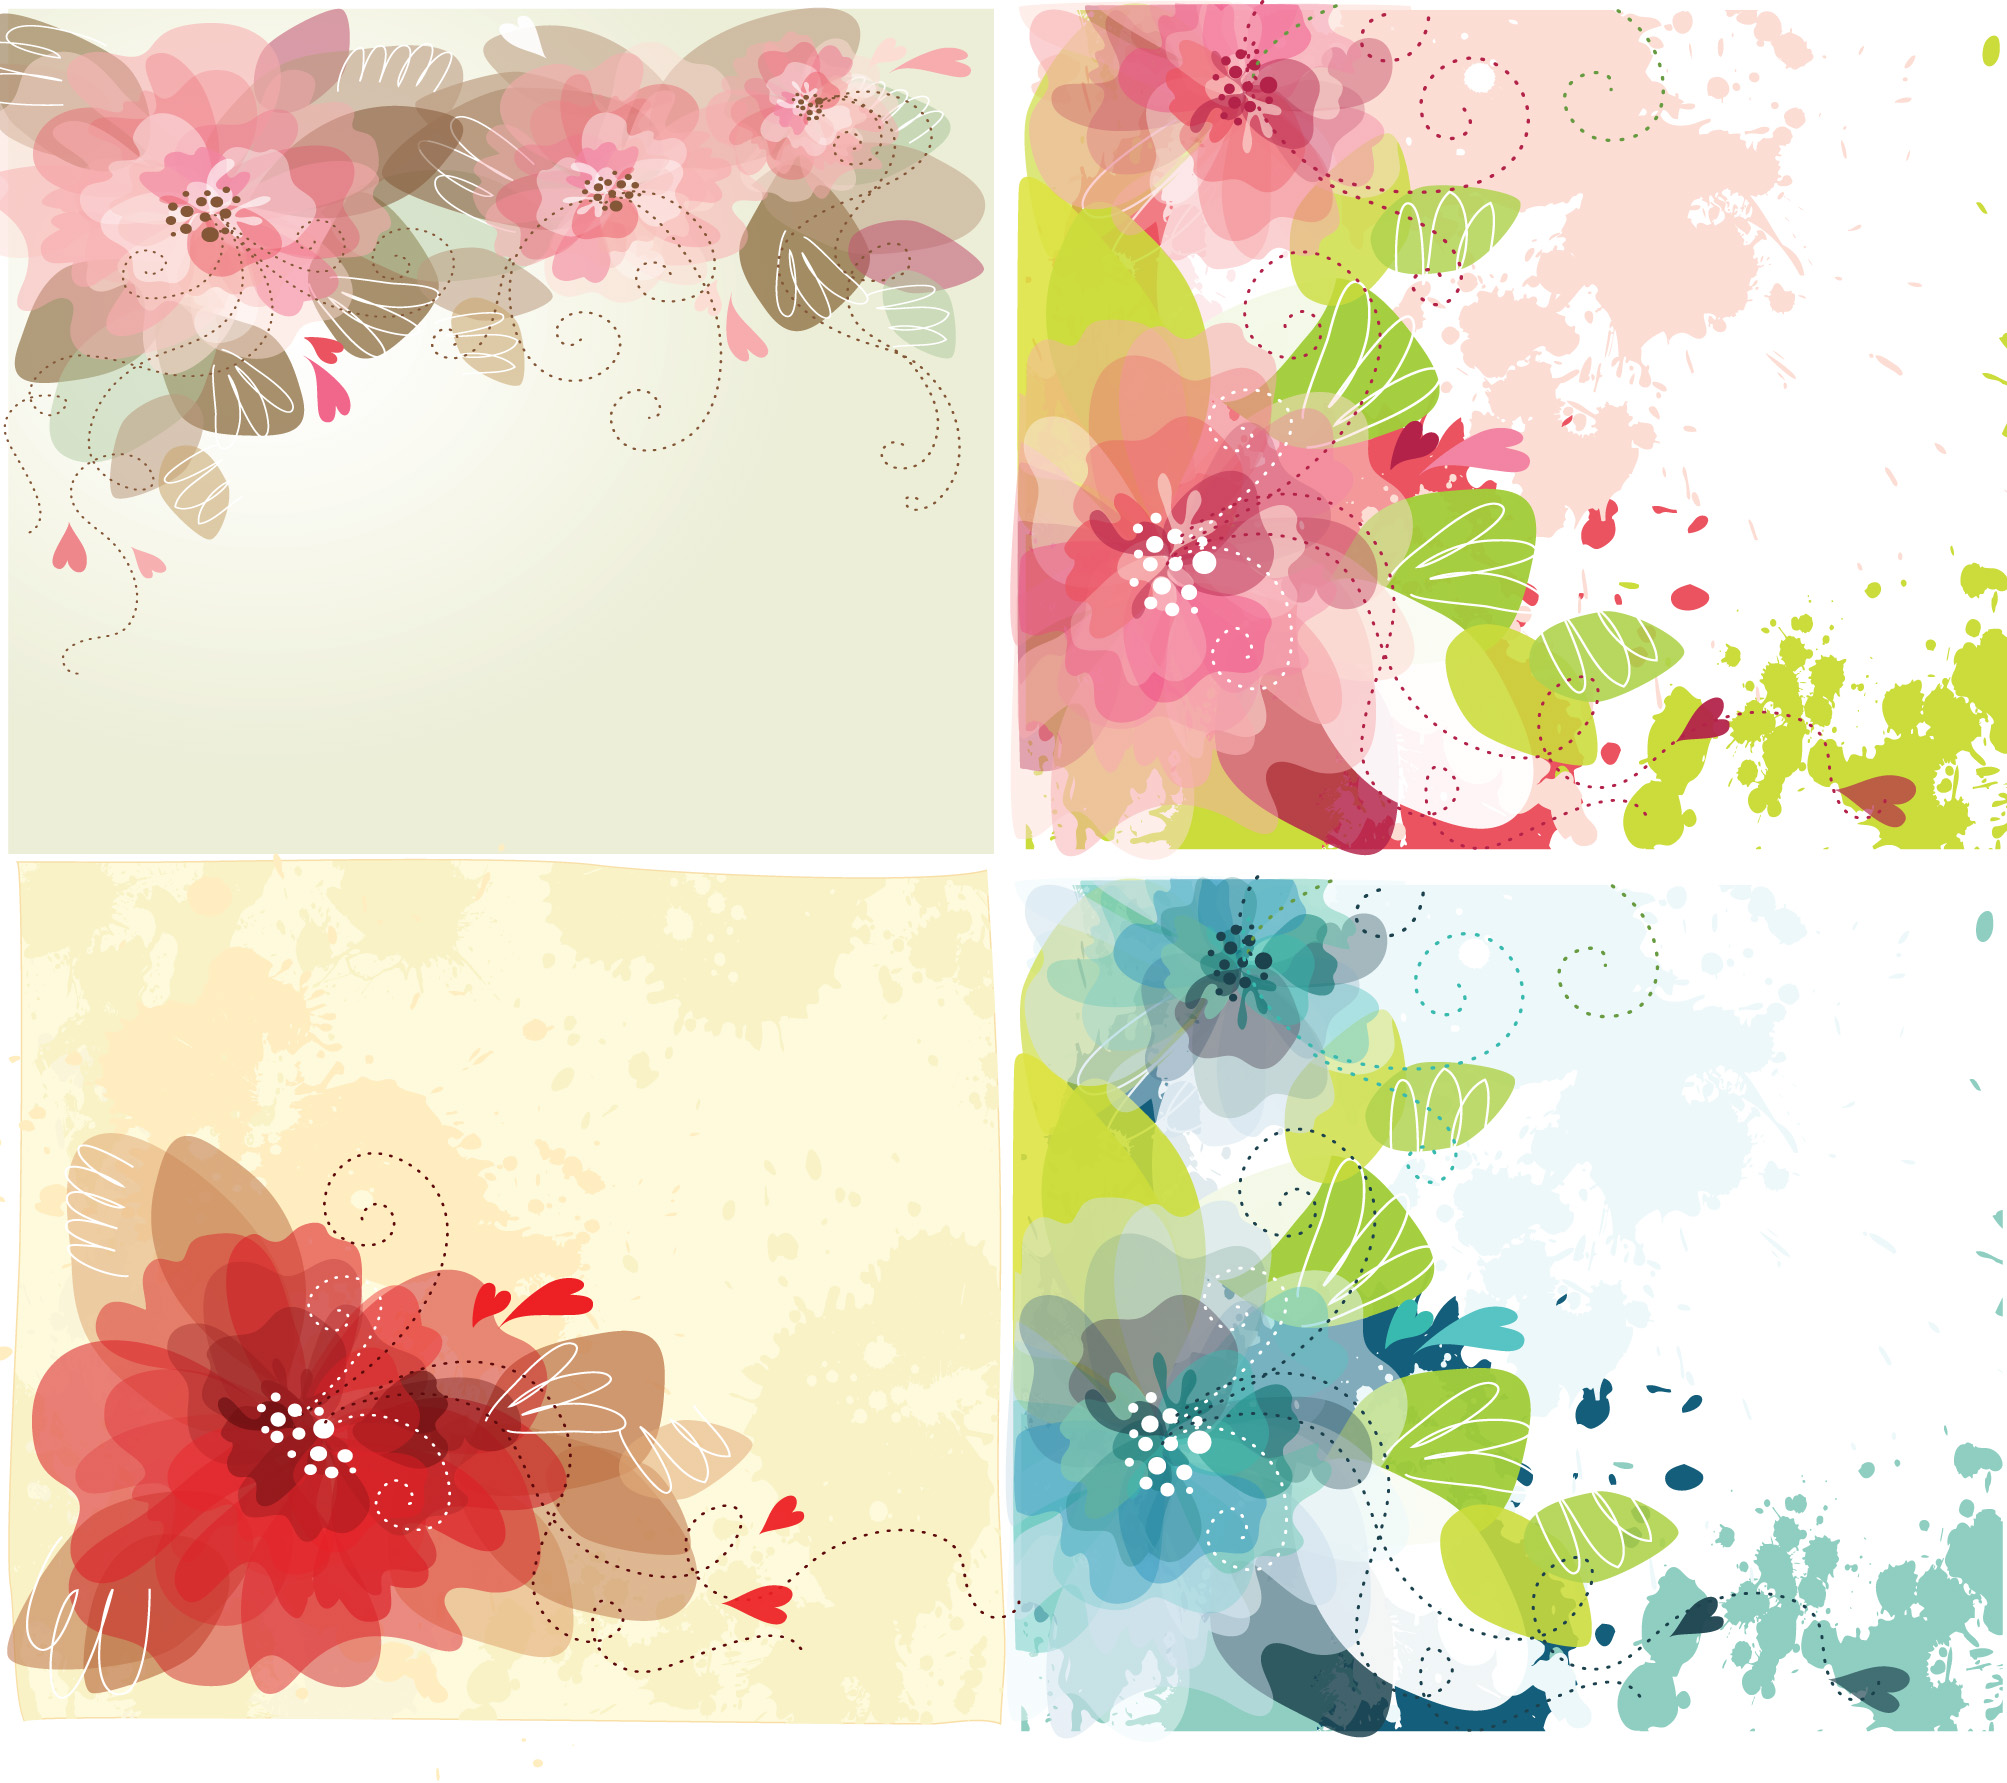 Floral images free svg free Free floral images download - ClipartFest svg free